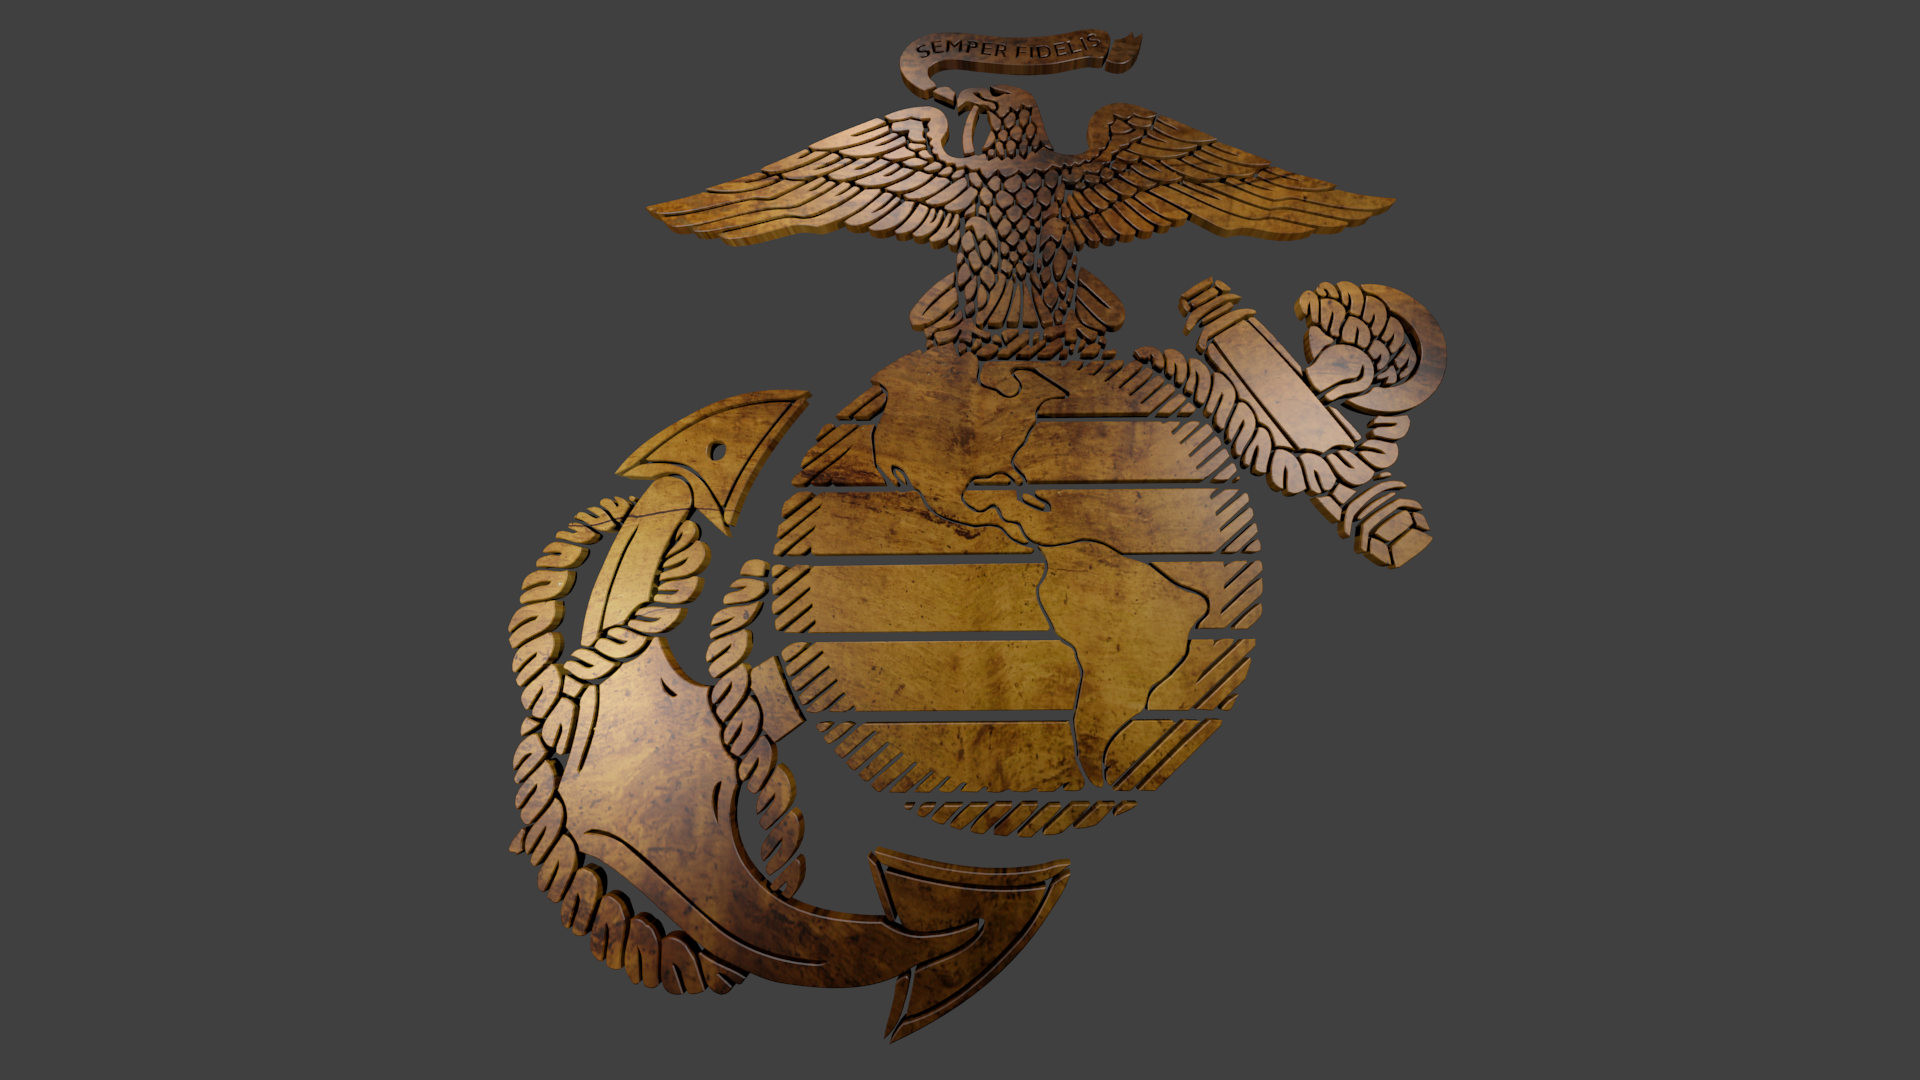 US Marine Corps Logo Wallpaper (48+ images)